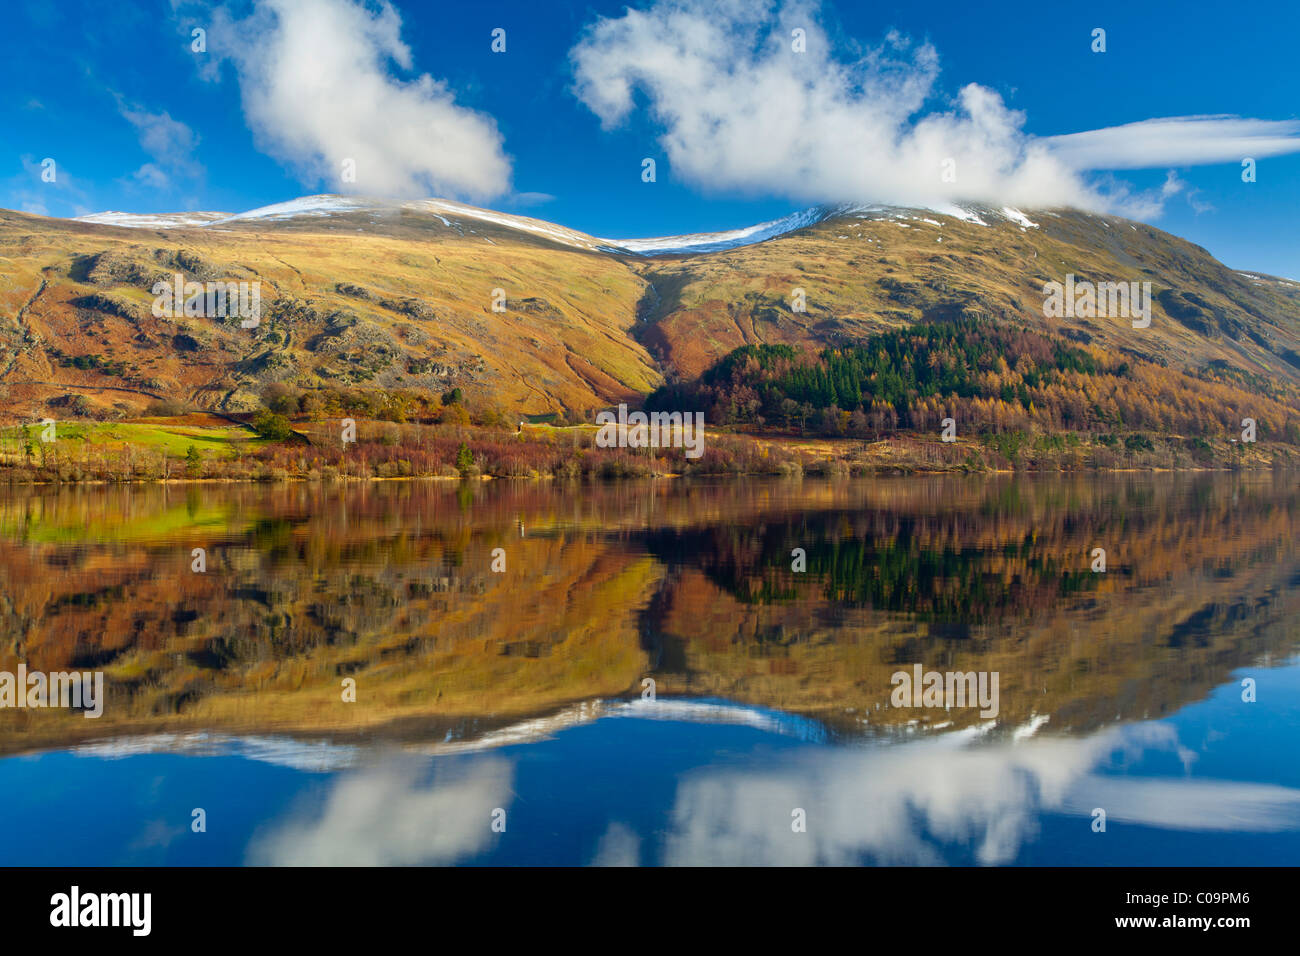 England, Cumbria, Lake District National Park. Lakeland hills reflected upon the still face of the Thirlmere Reservoir Stock Photo